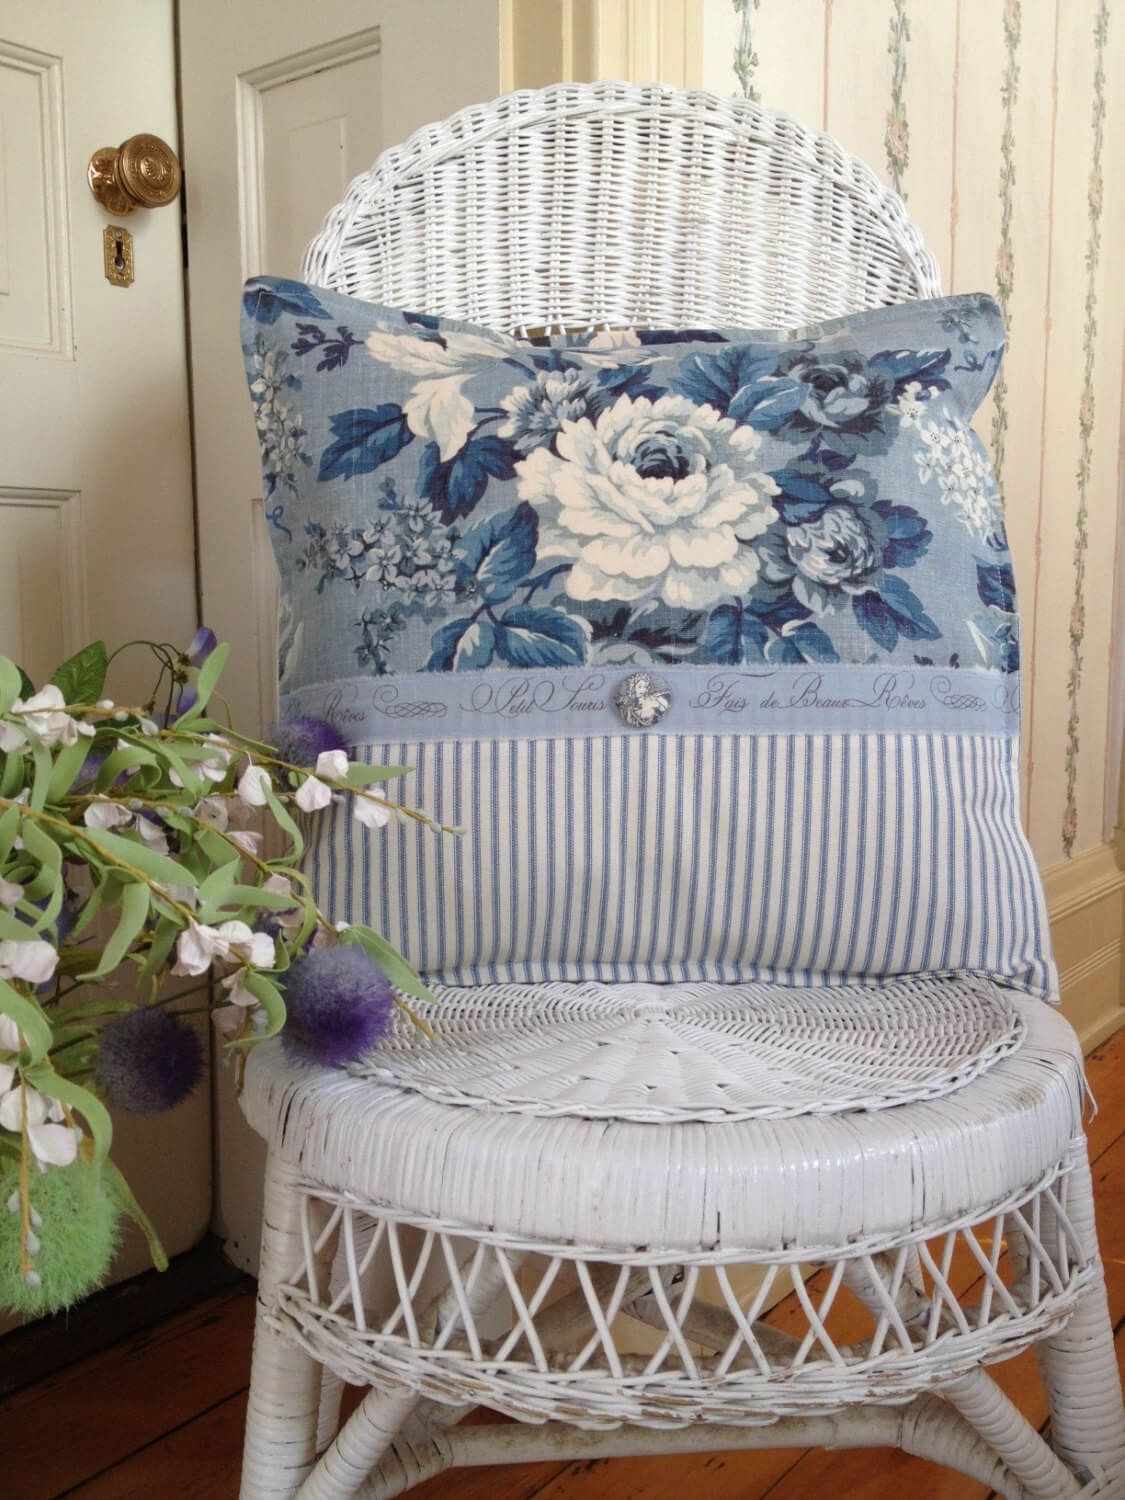 White Wicker Chair with Blue Toile Pillow